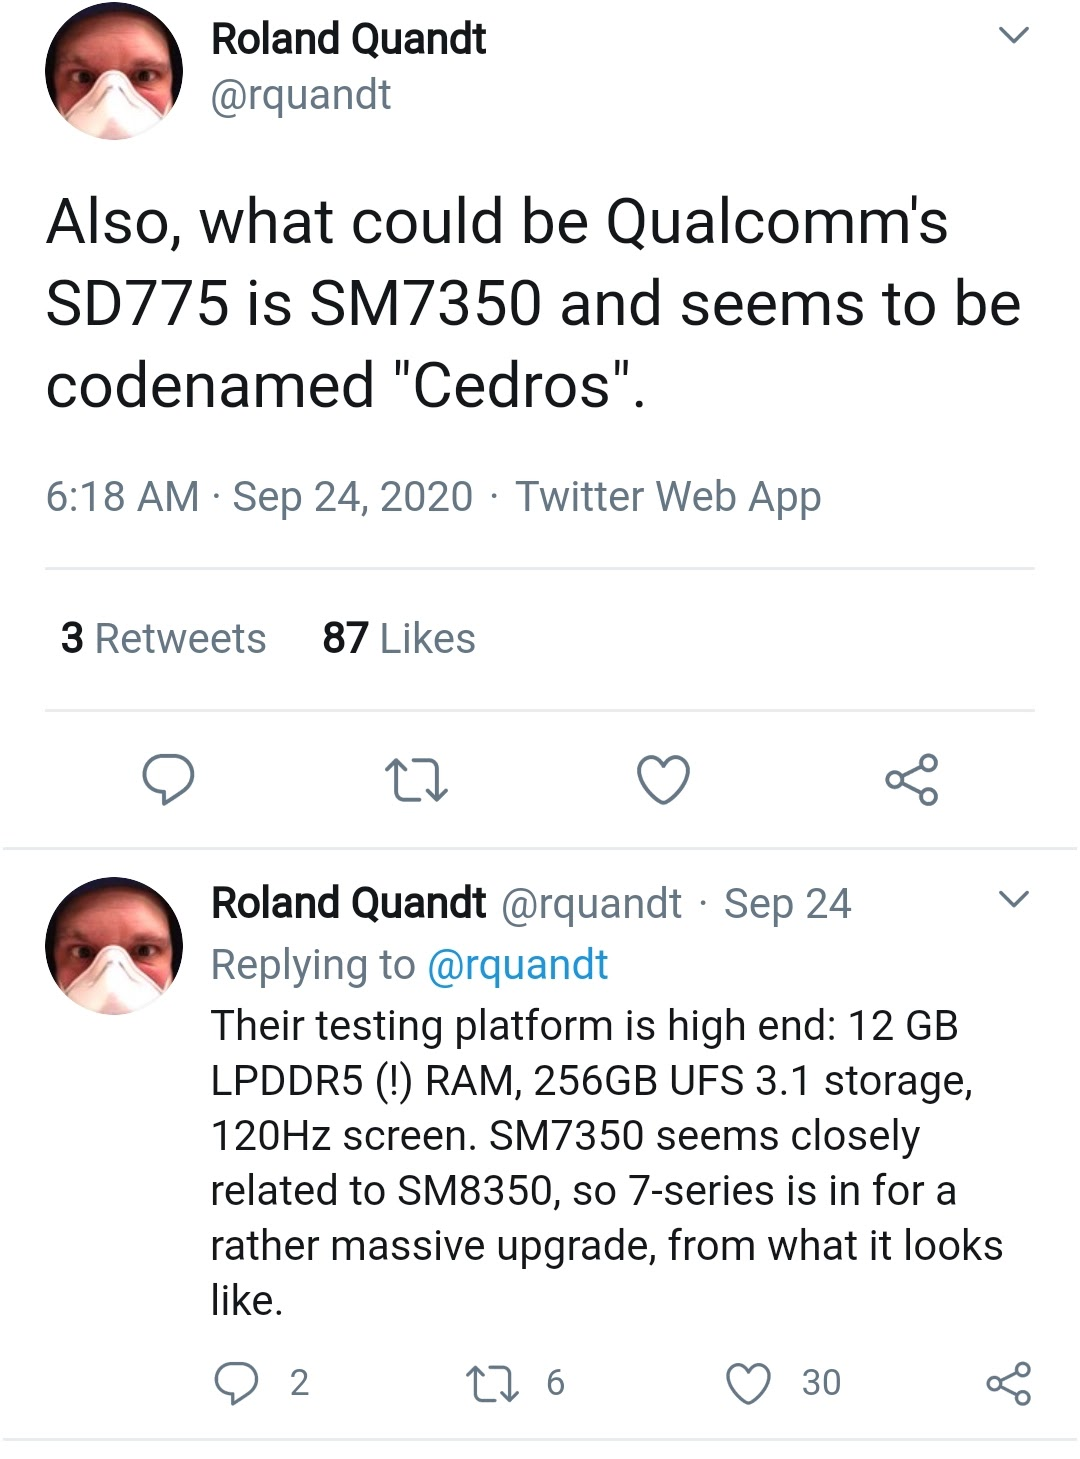 Qualcomm Snapdragon 775G 6nm will outperform Qualcomm 8 series processors